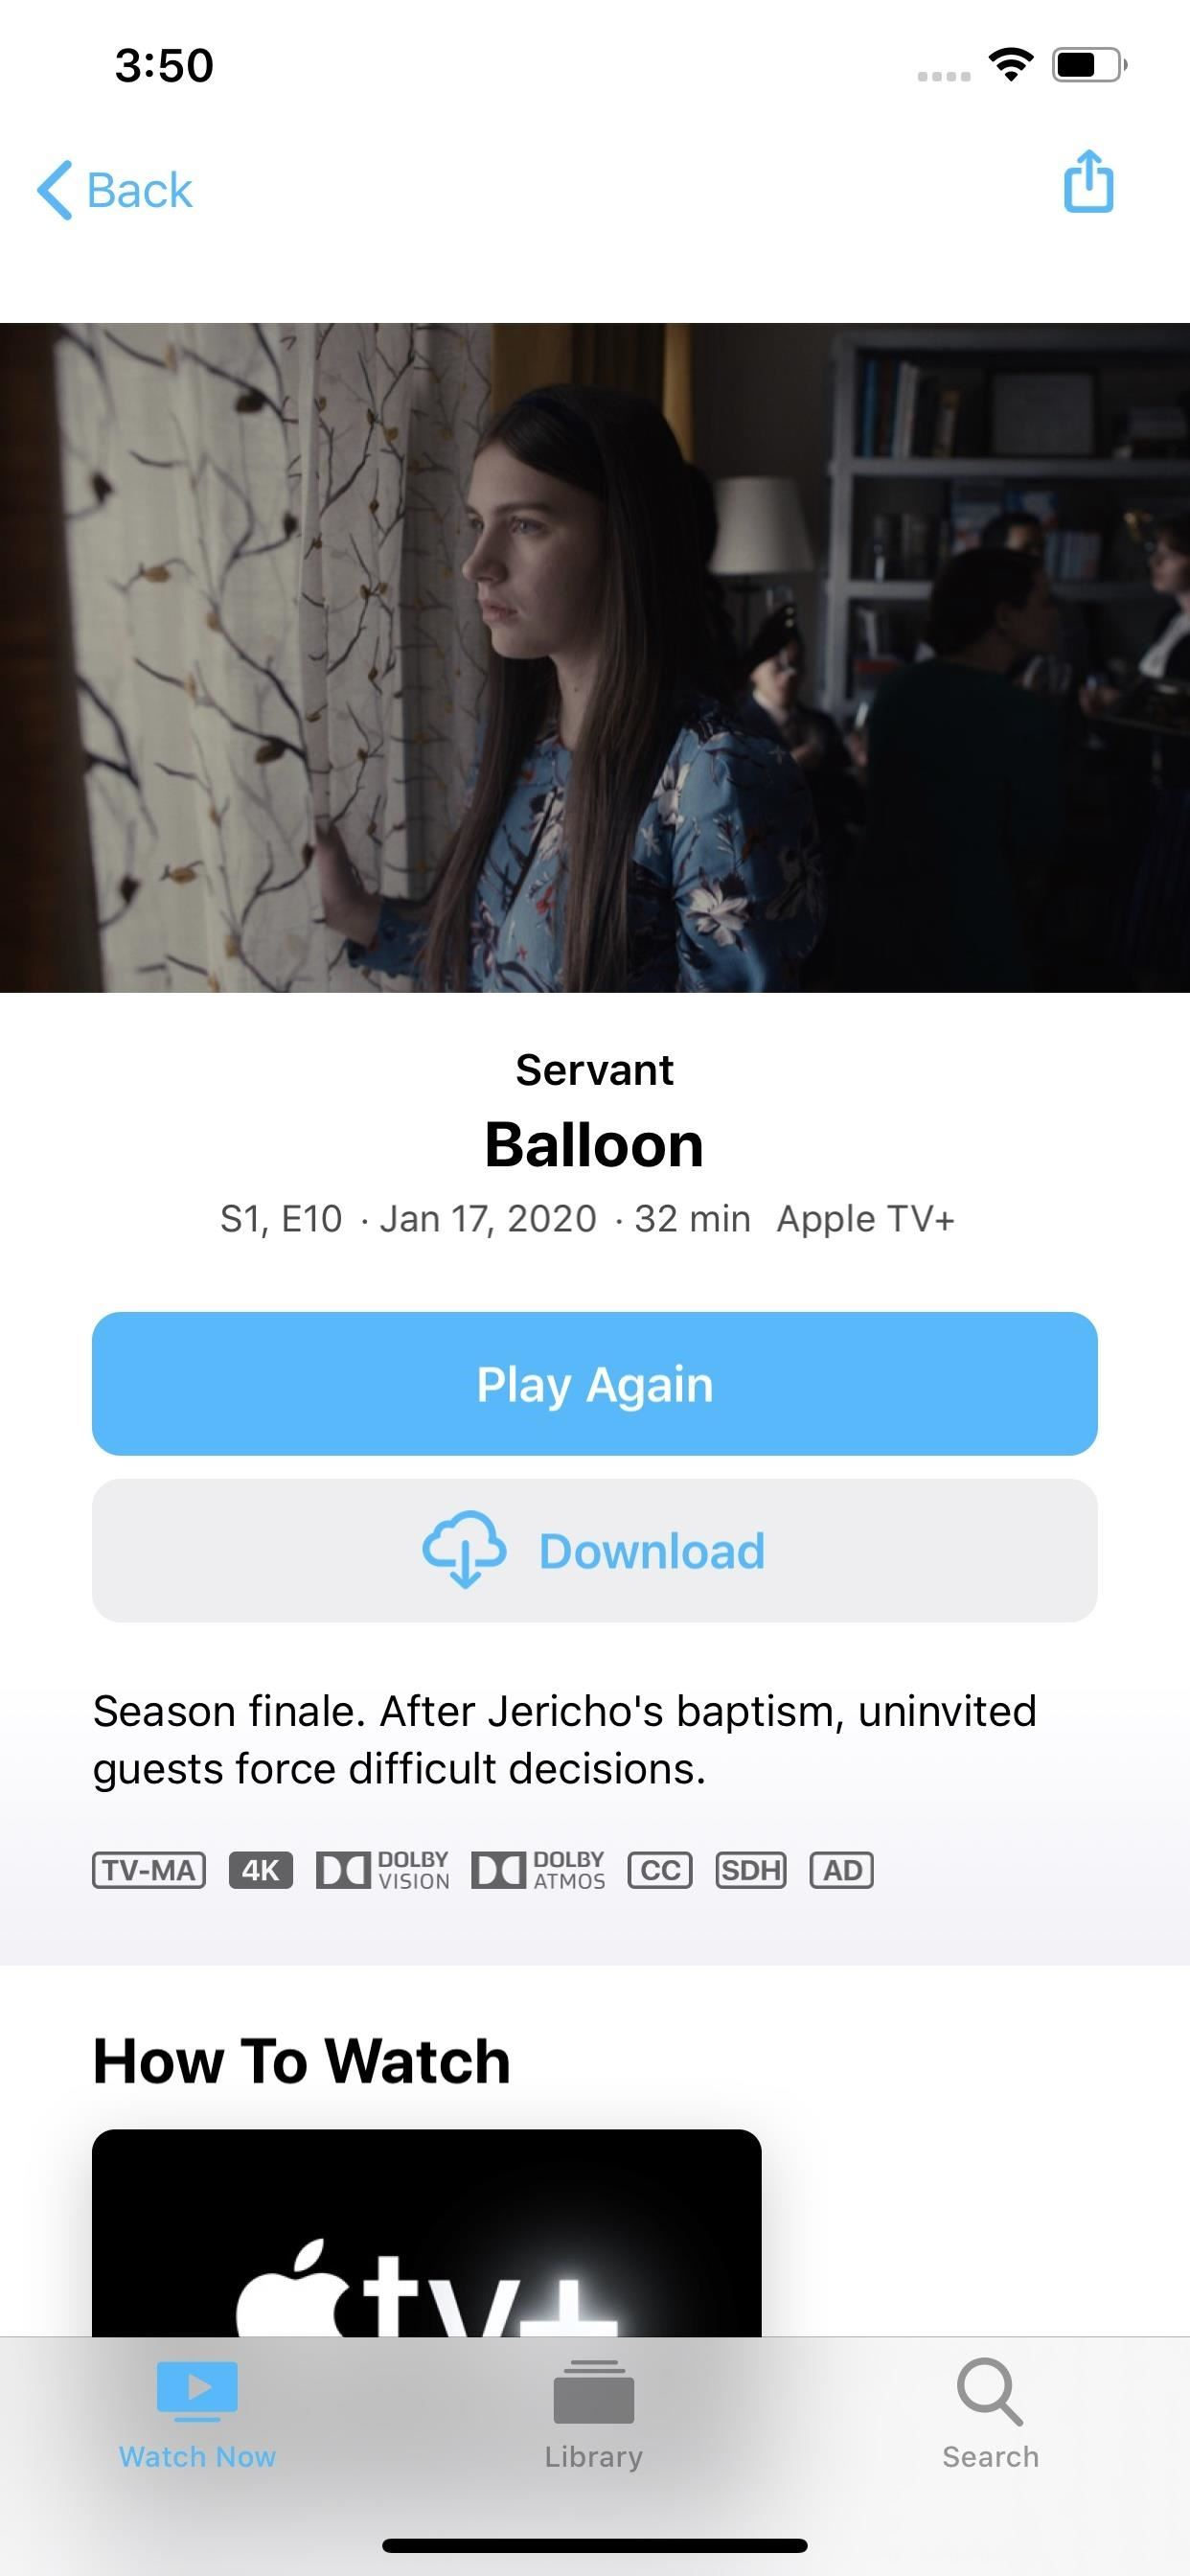 22 New Features & Changes for iPhone in iOS 13.4